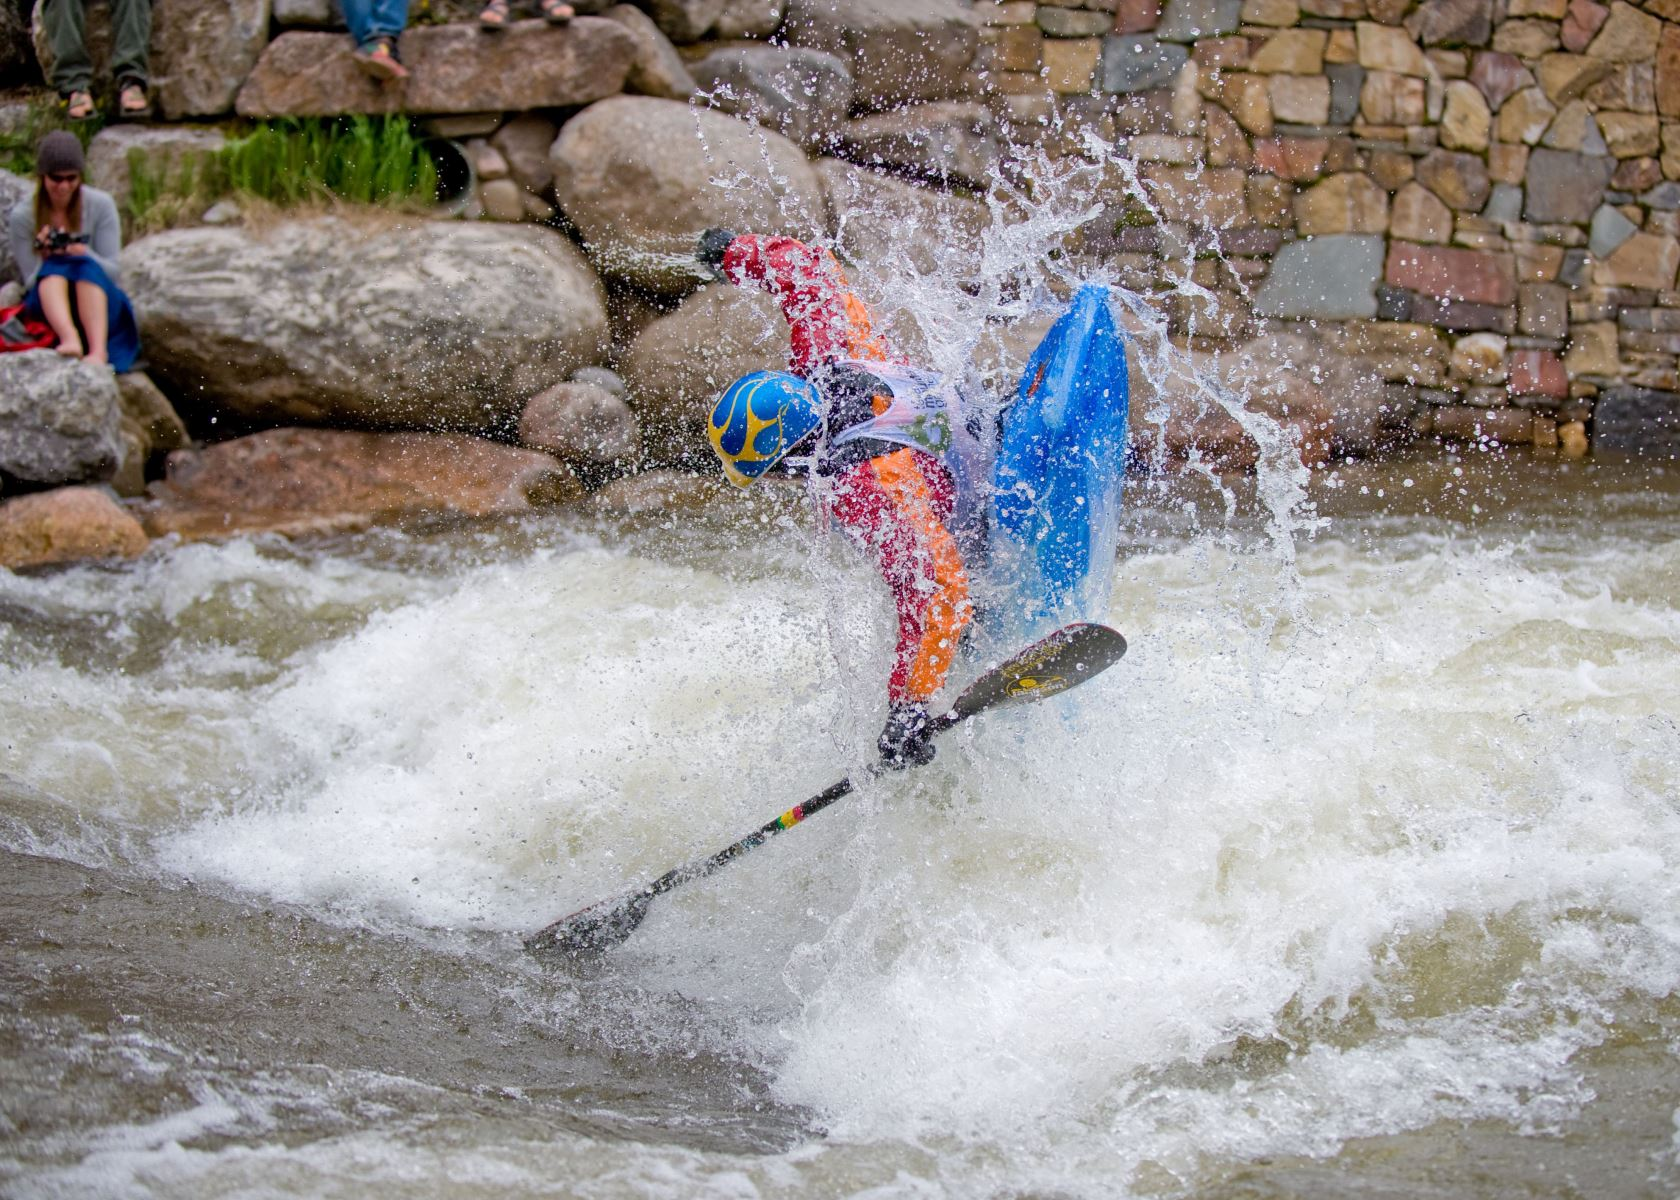 Go Pro Games Kayaker in Vail Colorado on River